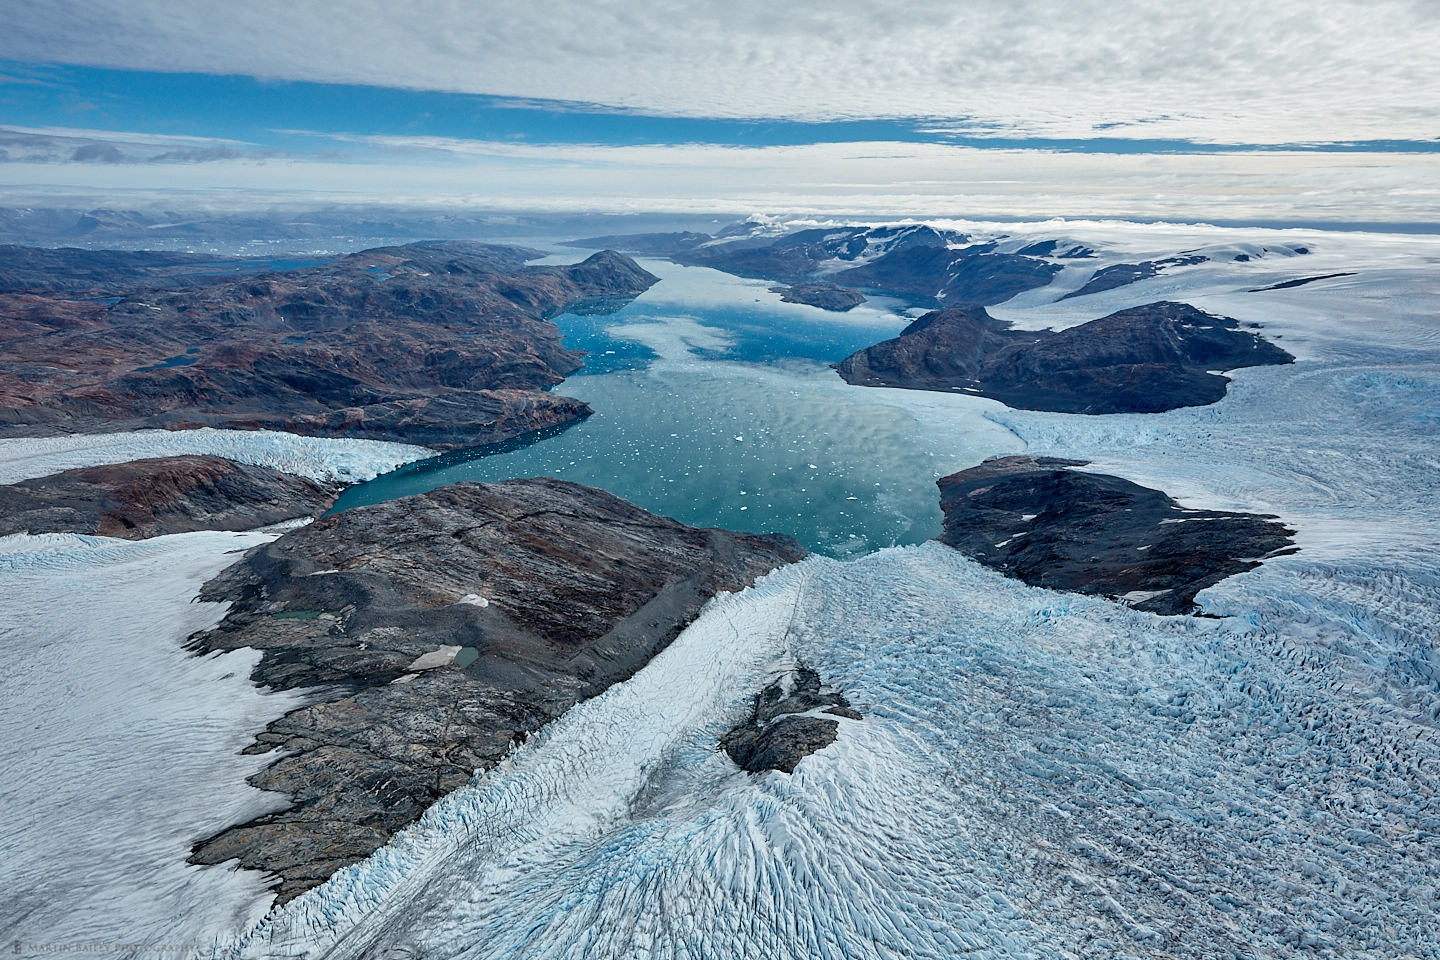 Heim and Kagtilerscorpia Glaciers and Johan Petersen Fjords from